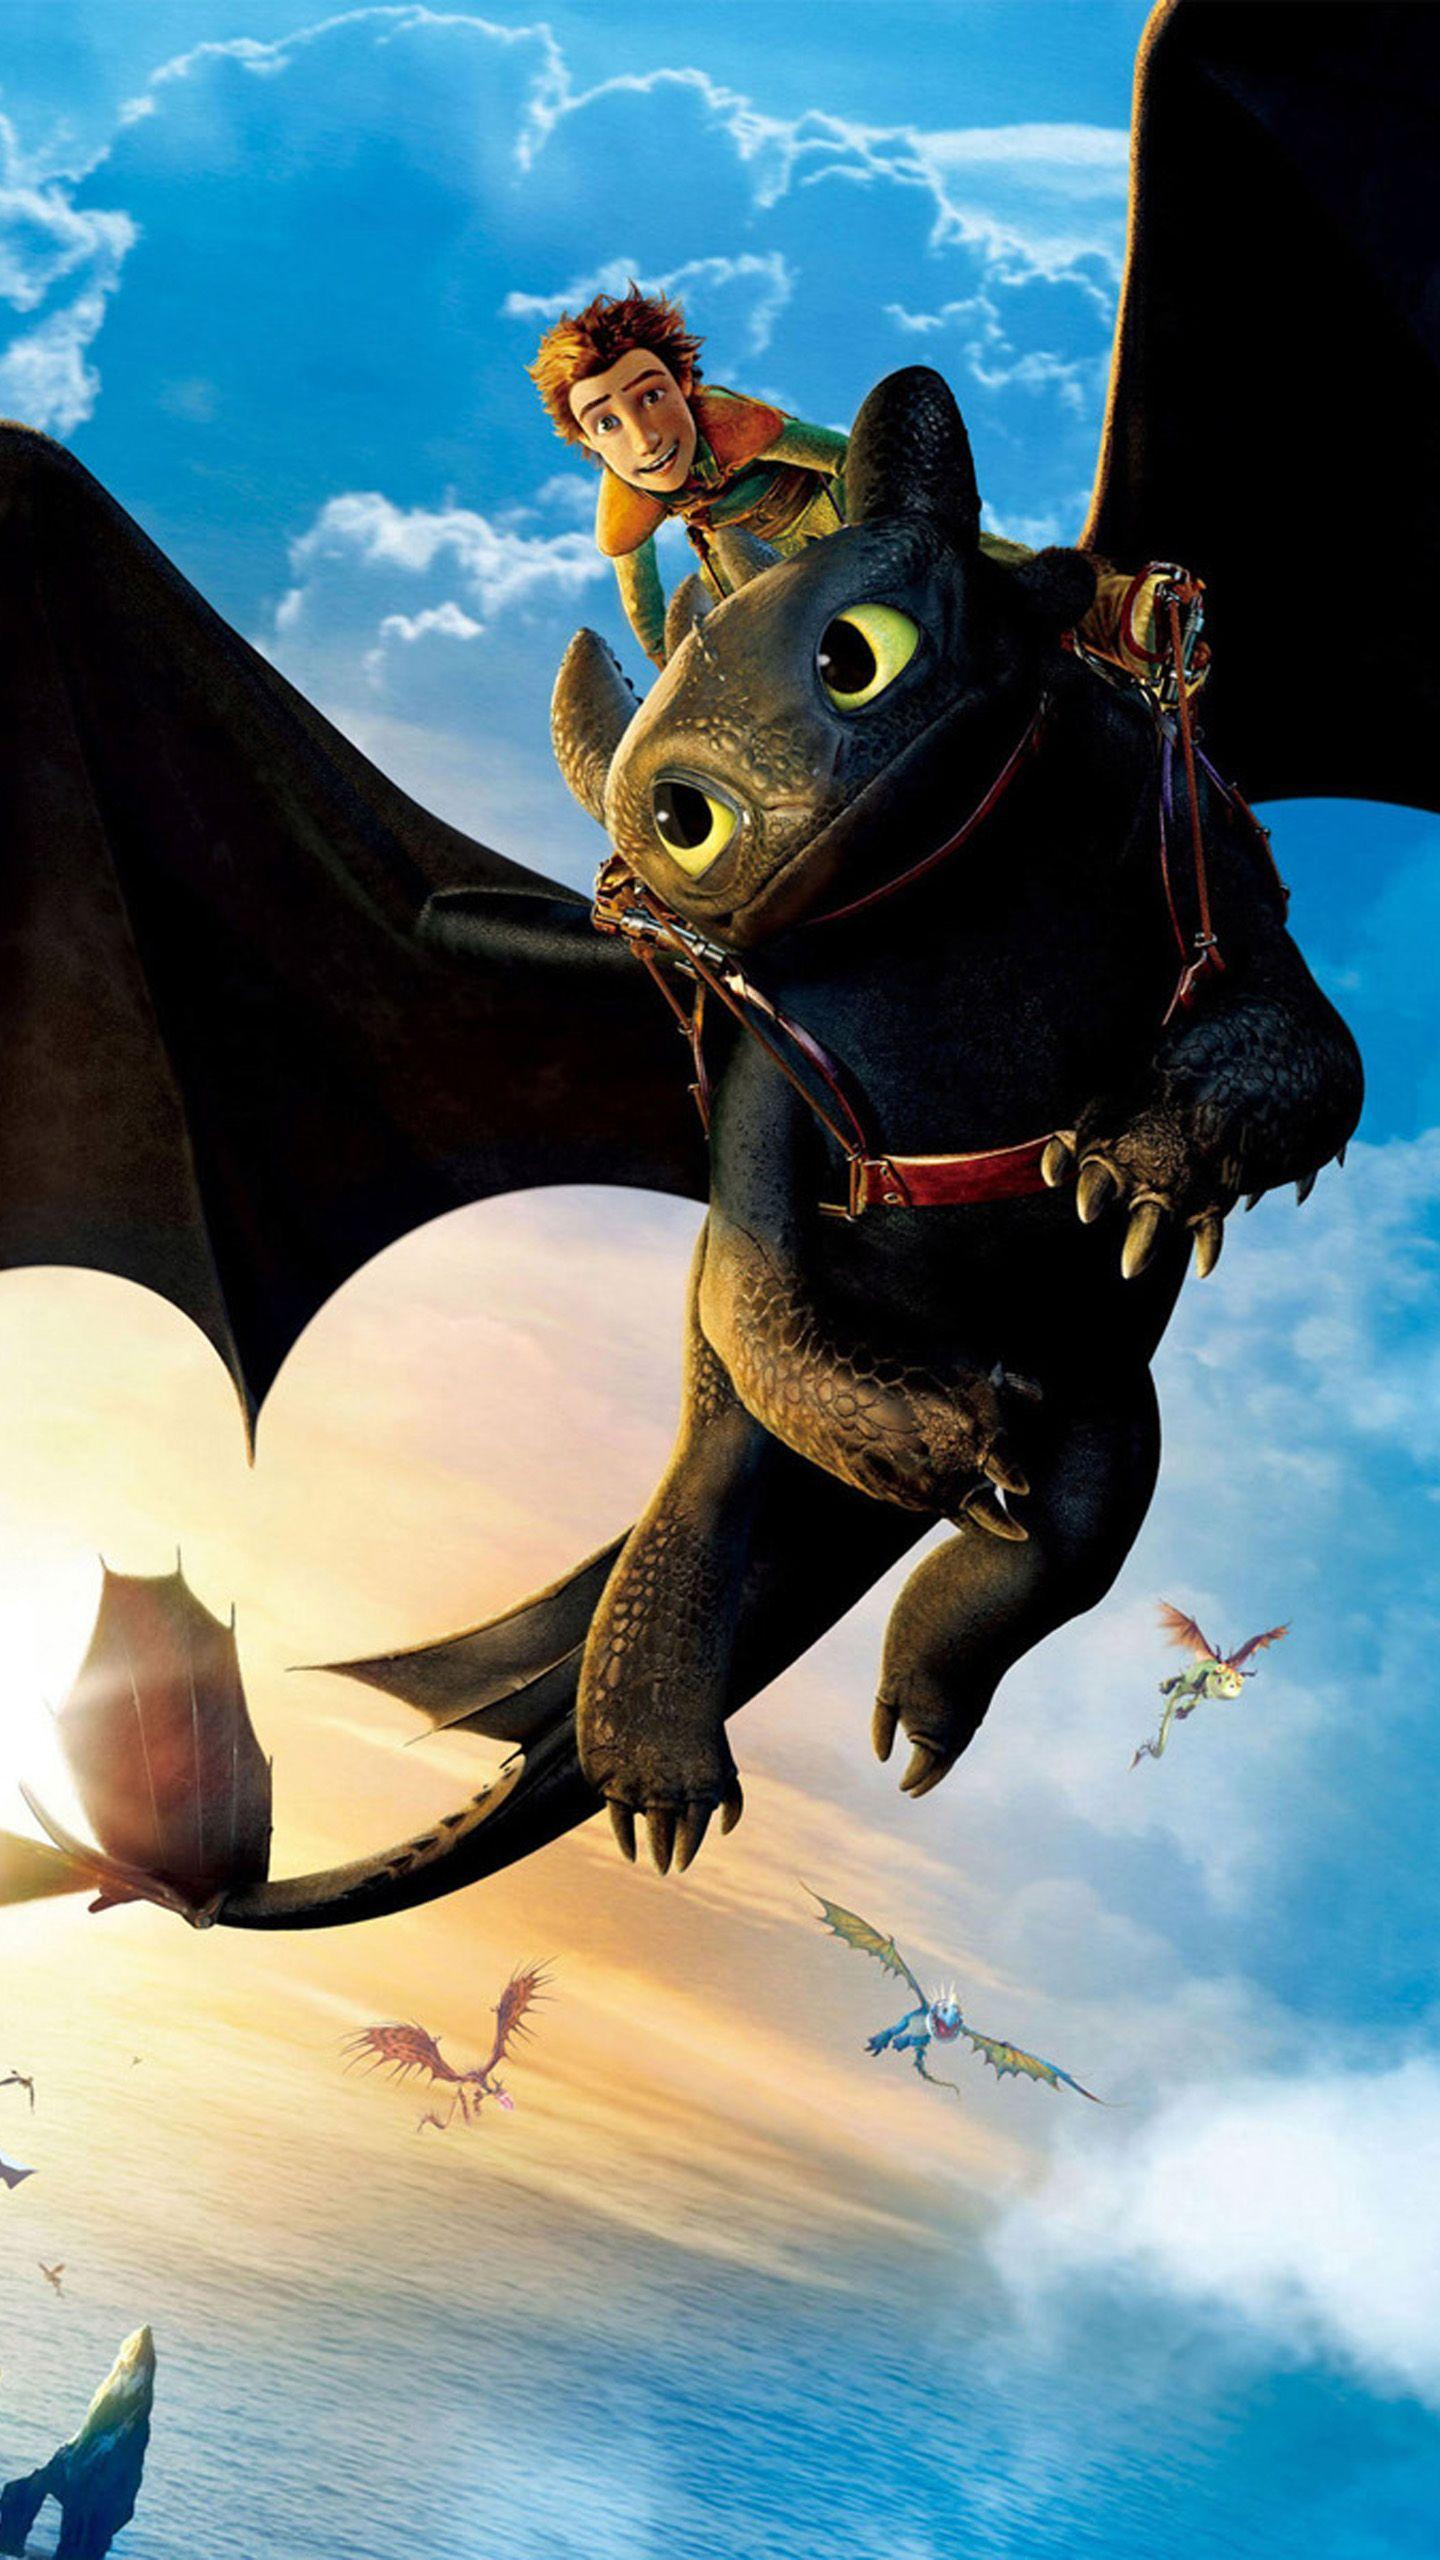 How To Train Your Dragon Wallpapers Top Free How To Train Your